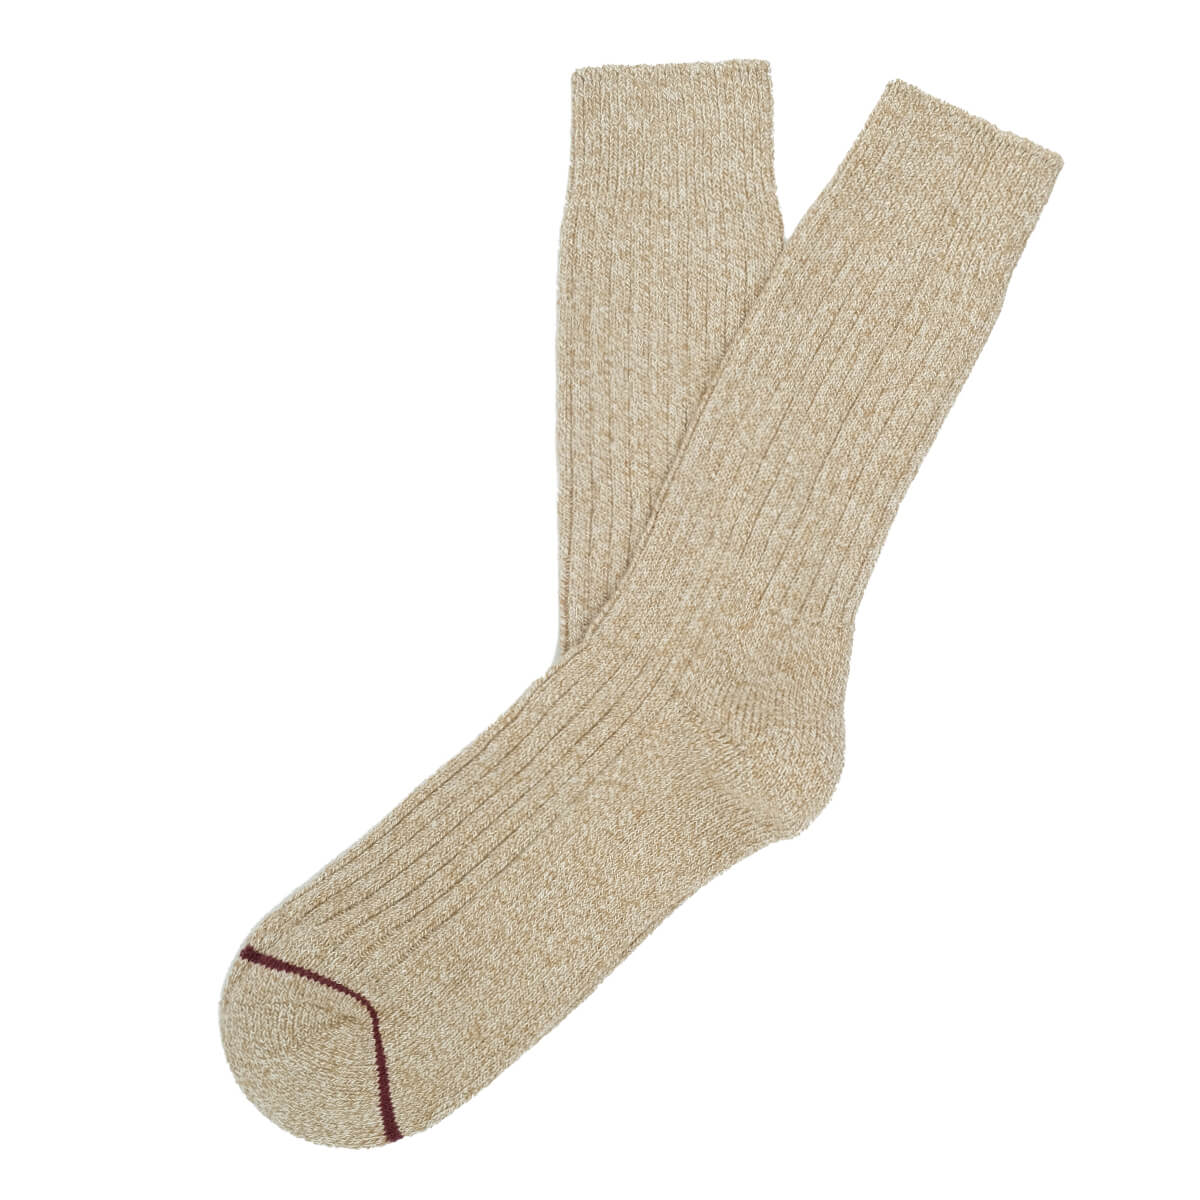 Get The Boot Socks - Brown - Image 1